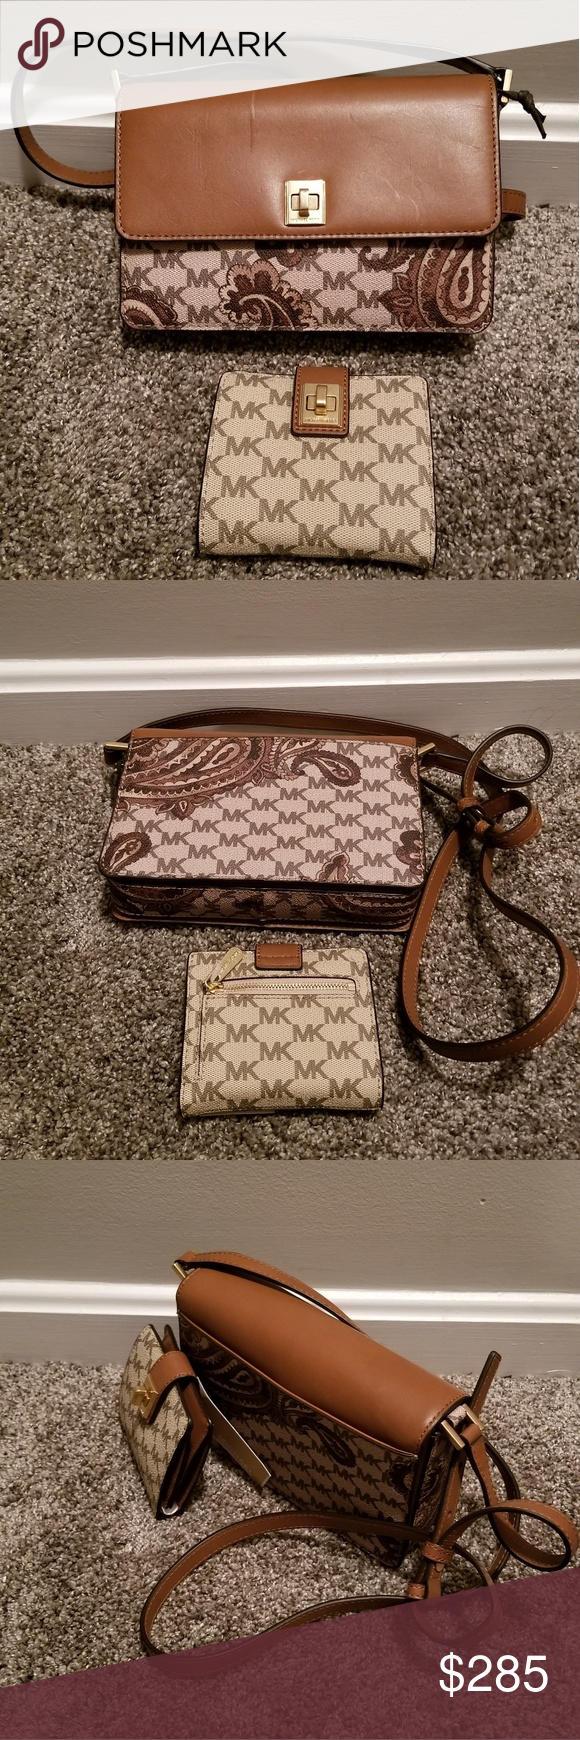 8dcff0541ee1 Michael Michael Kors Messenger and Wallet Michael Kors Paisley Natalie Md  Messenger Bag (Luggage)